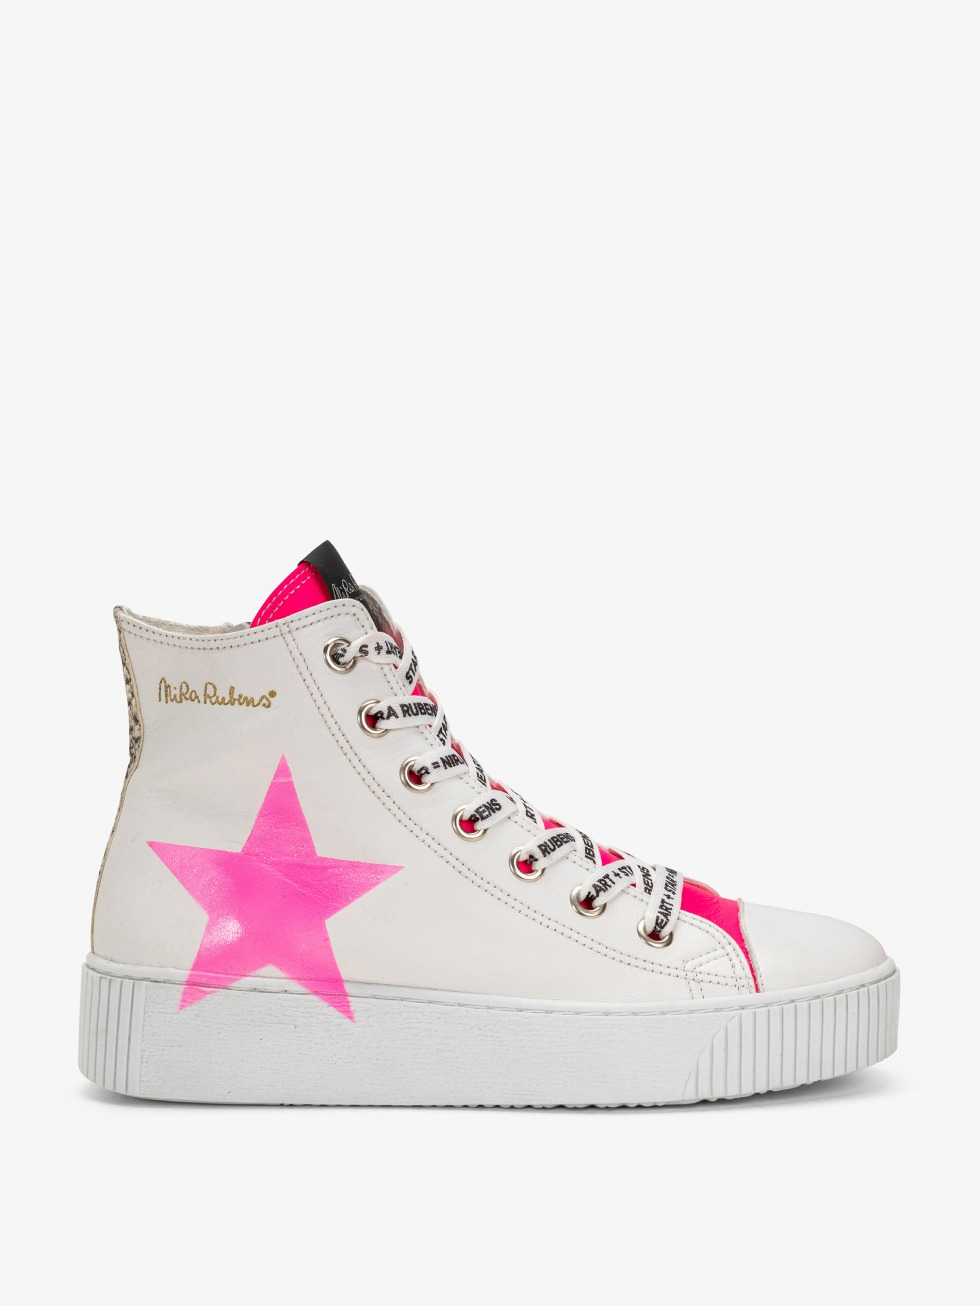 Long Island Sneakers - Neon Python Star